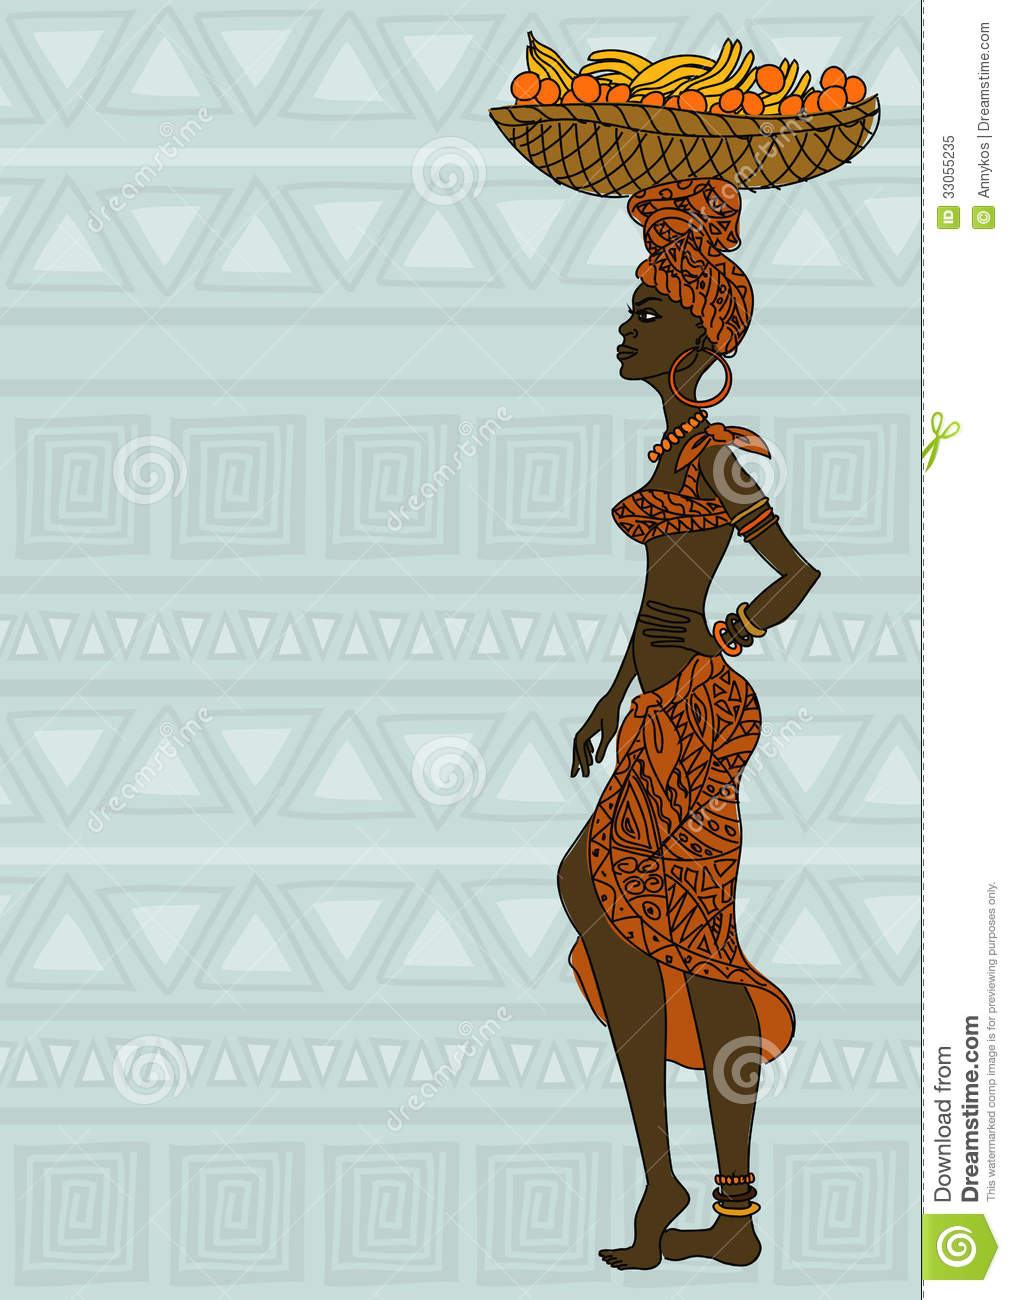 African Girl With Fruit Basket On The Head Royalty Free